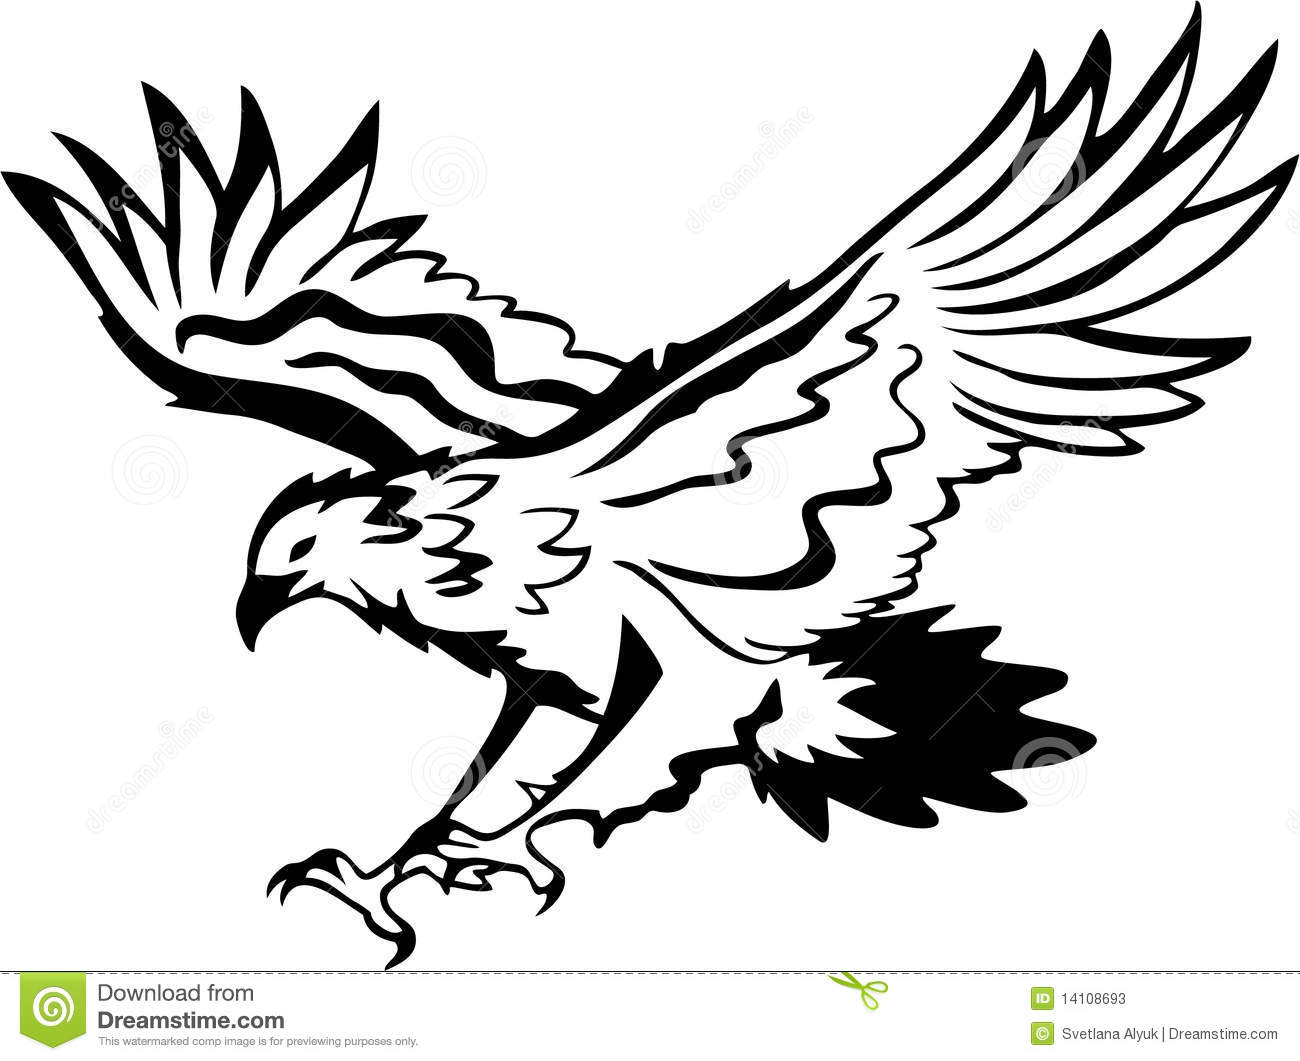 Black and white eagle clipart vector free Free Black And White Eagle, Download Free Clip Art, Free Clip Art on ... vector free